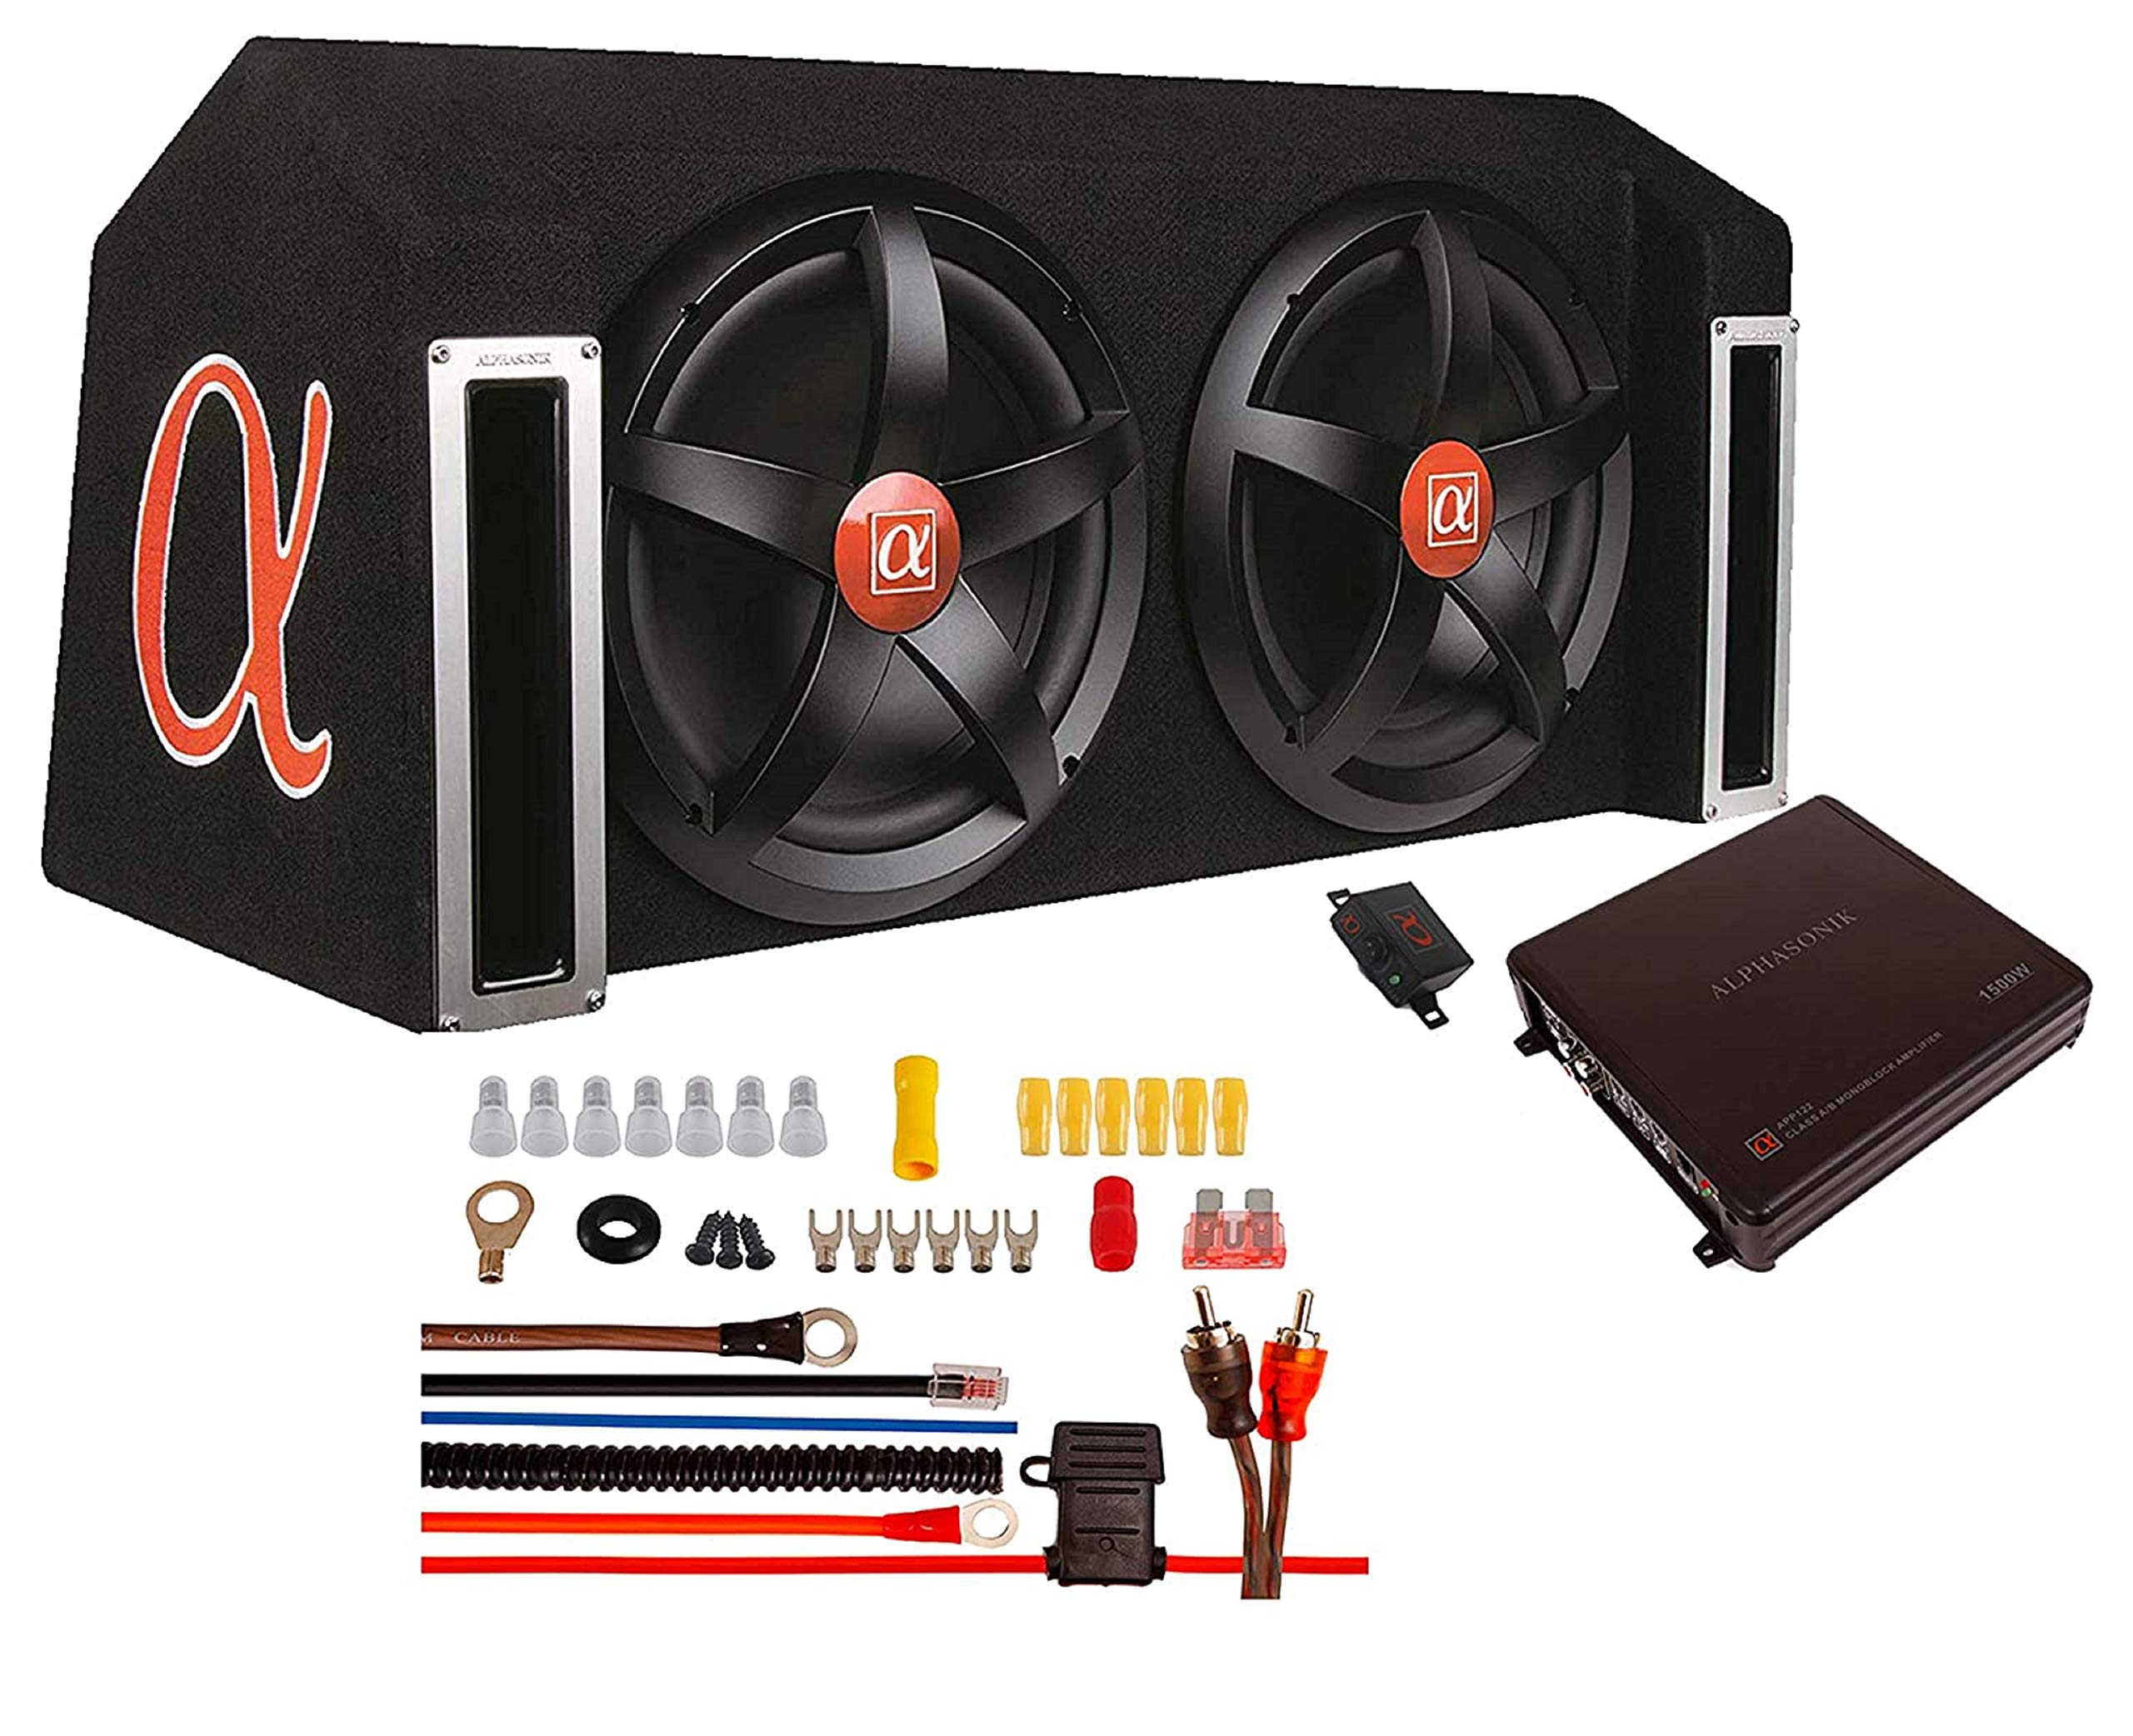 """ALPHASONIK APP122 Complete 1500 Watts Dual 12"""" Subwoofers Car Bass Package with Amplifier and Installation Kit Included - 2 Sub Woofers with Grills in Custom Ported Box Loaded Enclosure, Black"""